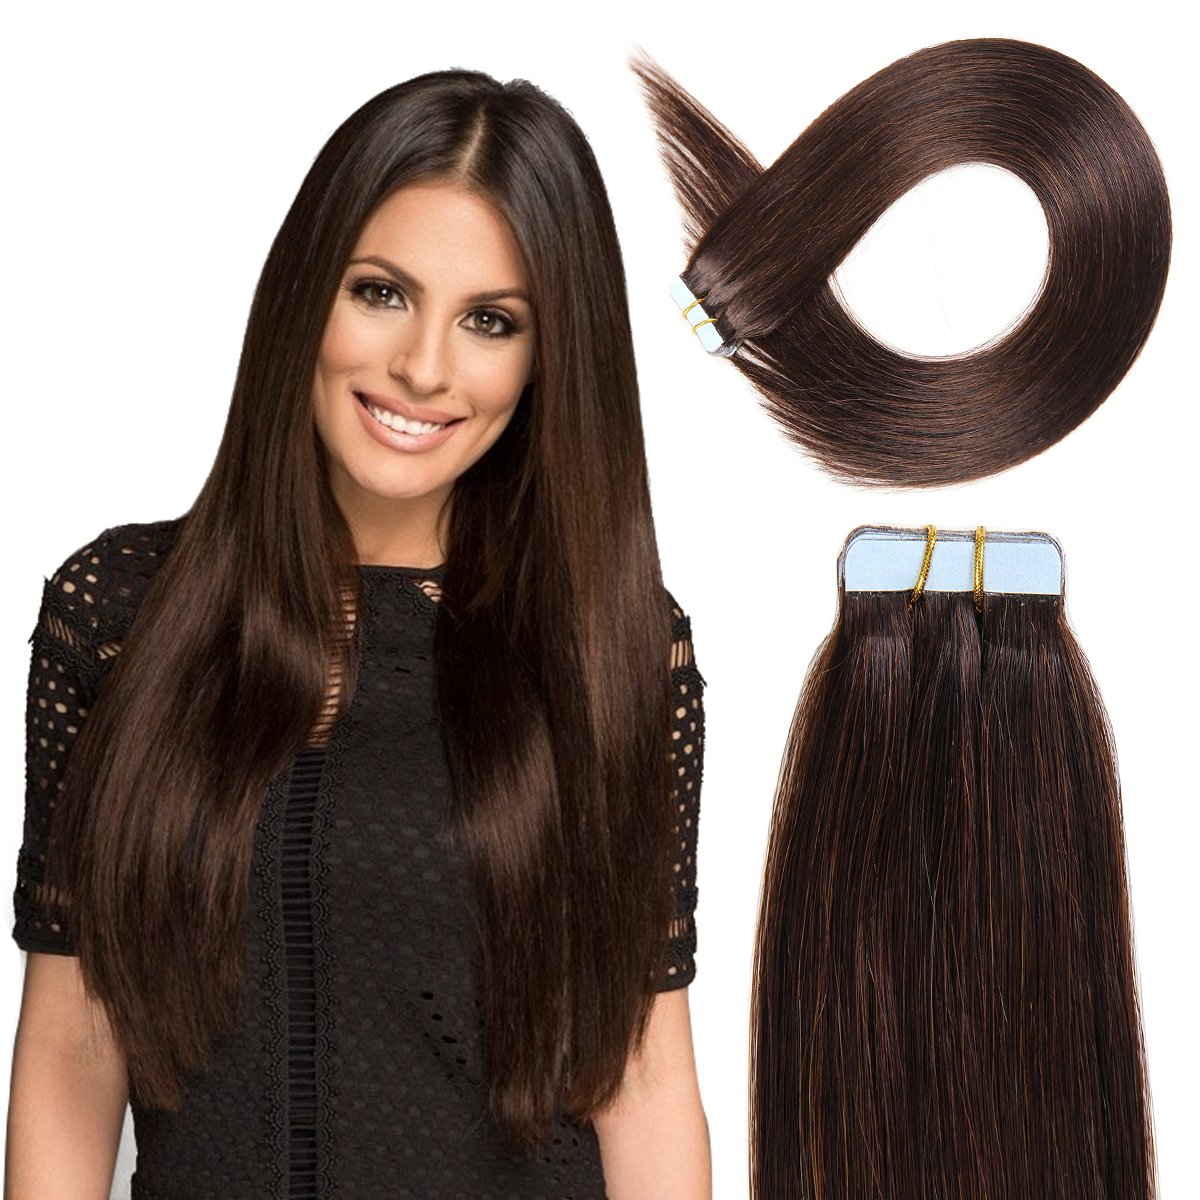 Tape in Hair Extensions Human Hair 20 inch 50g/pack 20pcs Seamless Skin Weft Remy Straight Hair 2# Dark Brown